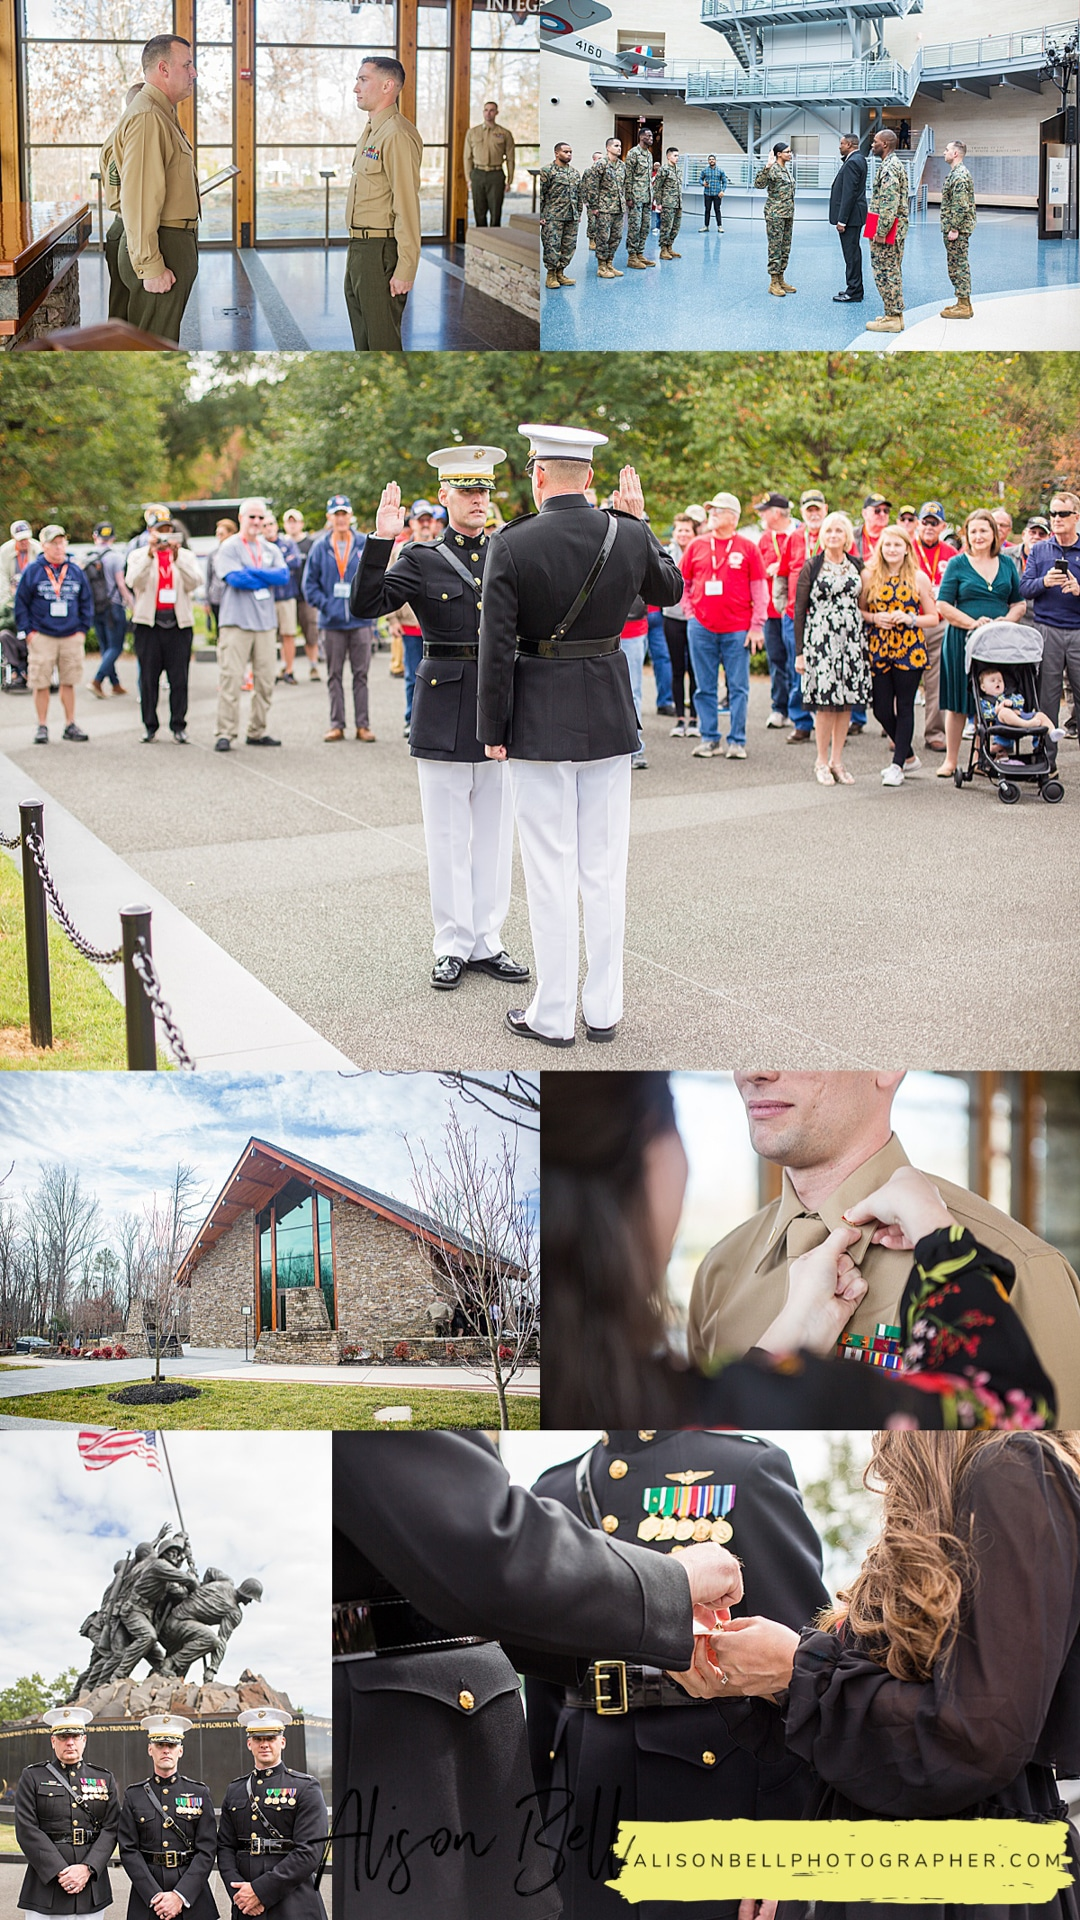 Top 3 locations in Northern Virginia and Quantico for Marine Corps promotion, re-enlistment and retirement ceremonies. alisonbellphotographer.com